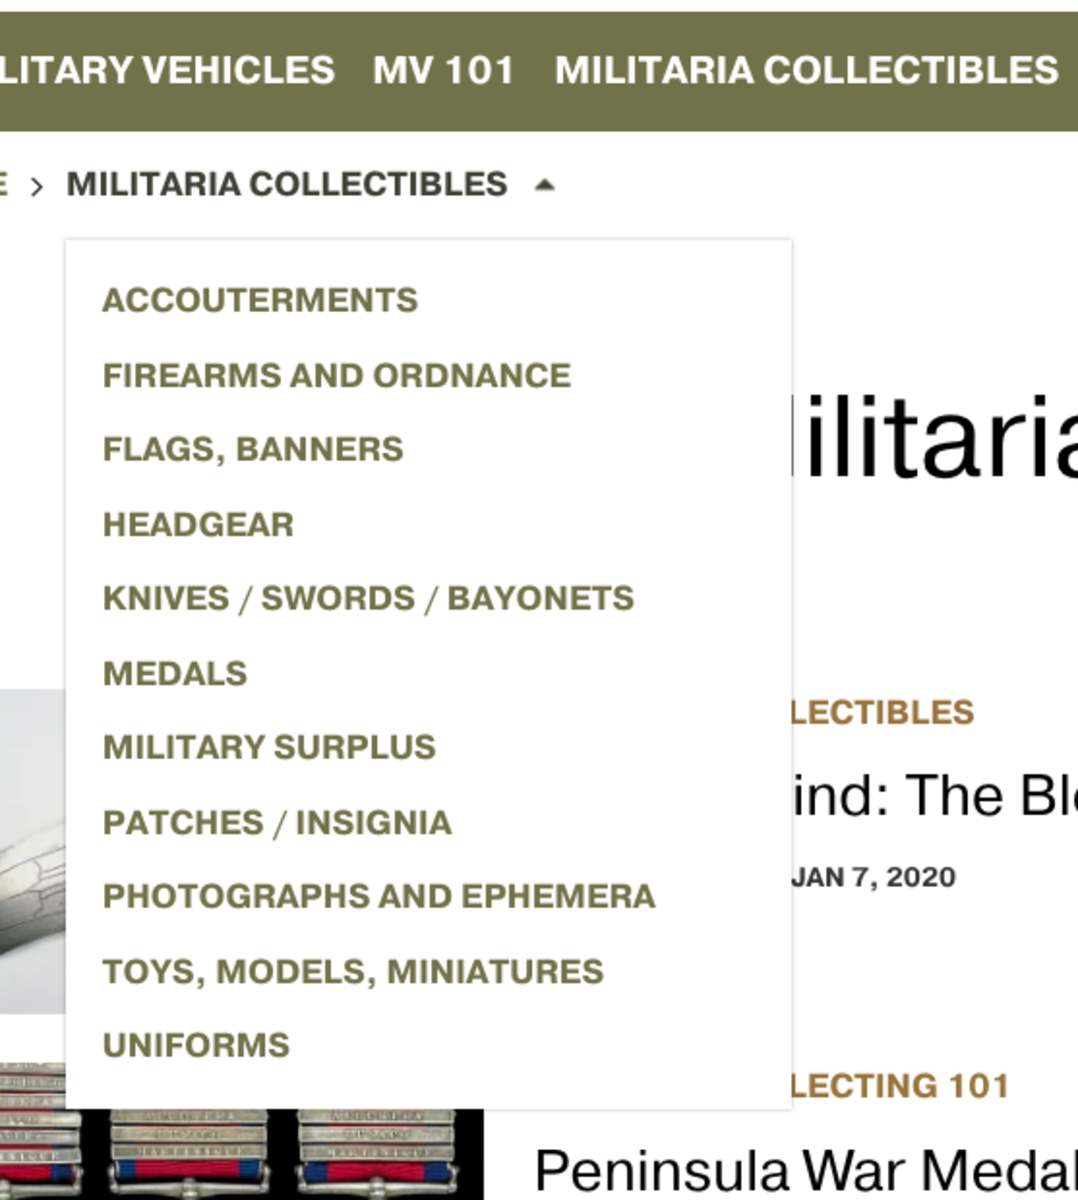 Militaria by CATEGORY OF RELIC